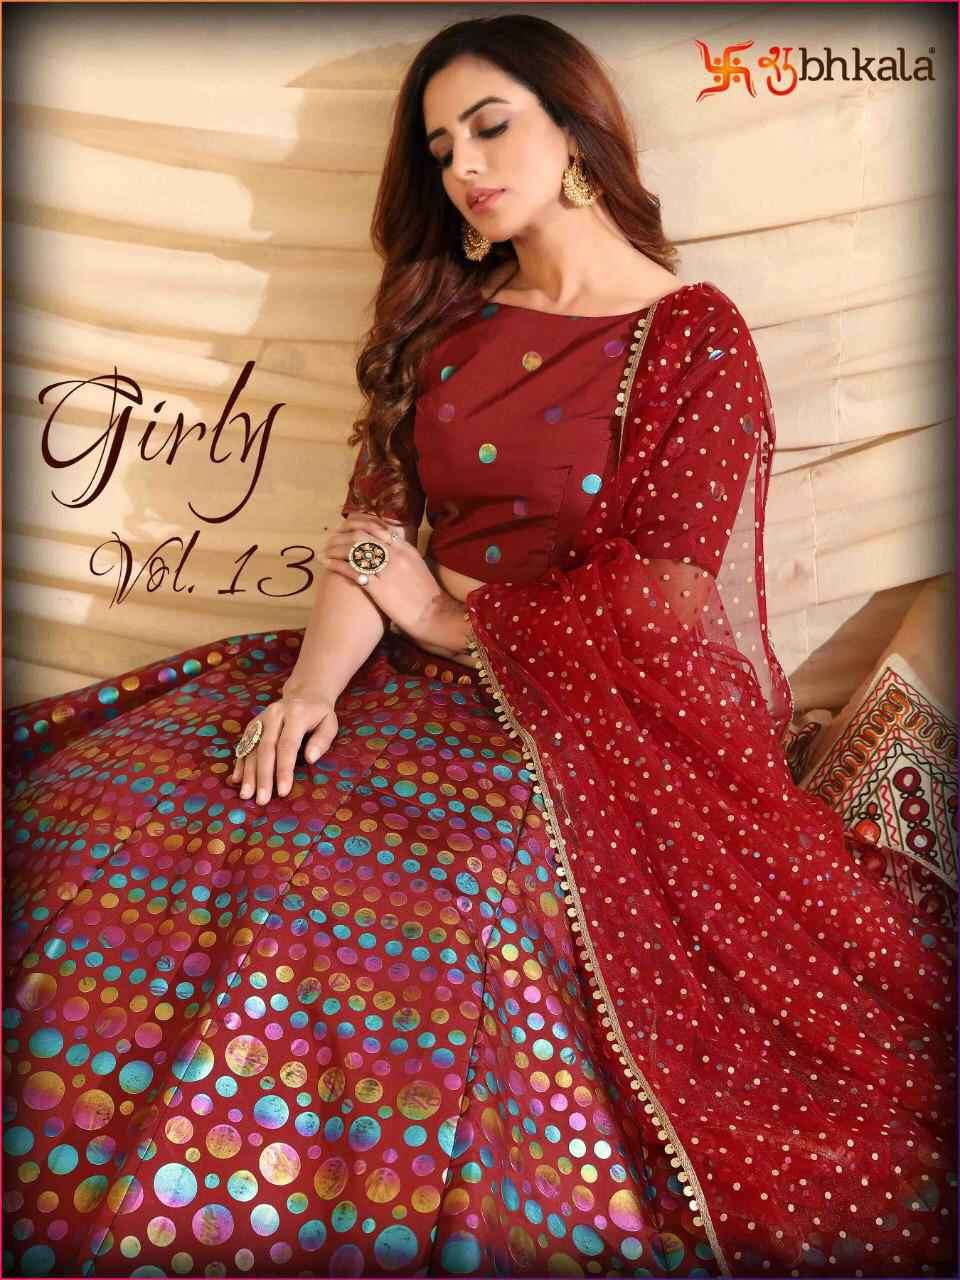 Khushboo Girly Vol 13 Designer Lehgna Choli New Collection at Best Rate